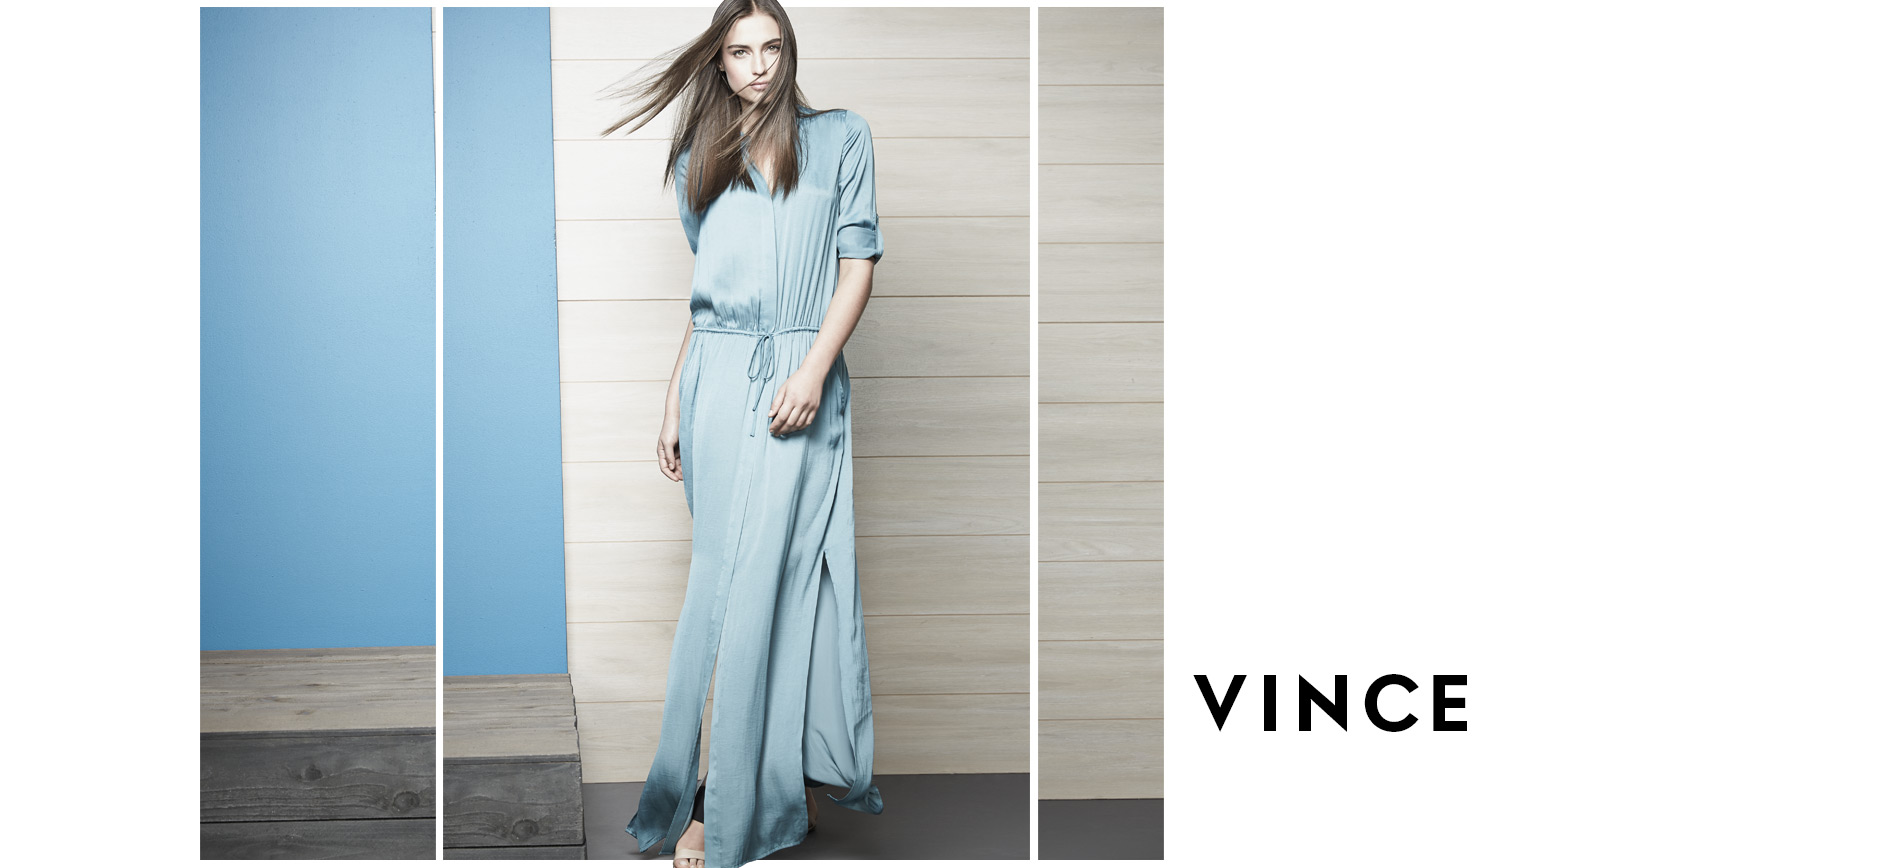 Vince Lookbook